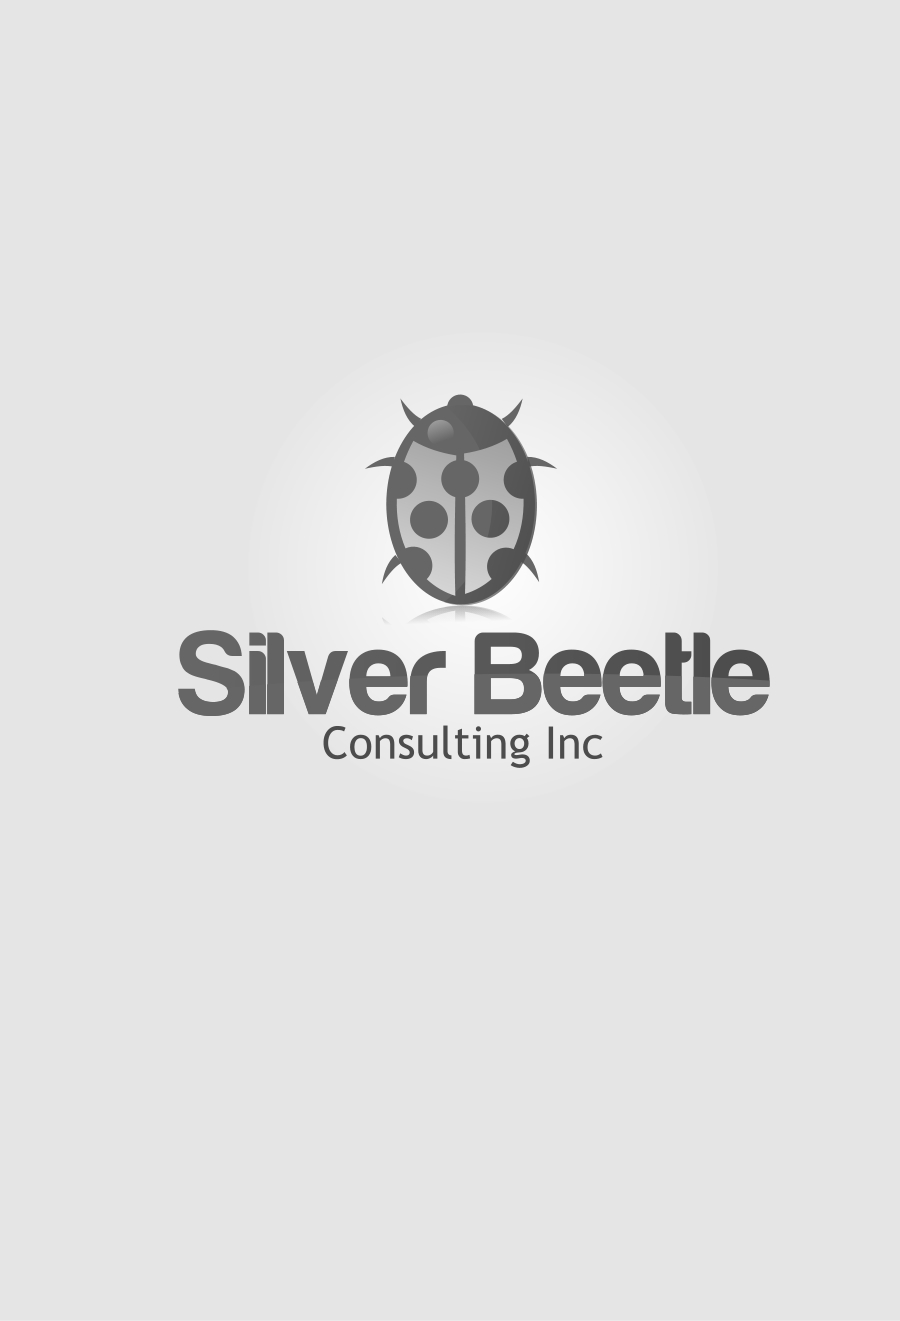 Logo Design by Private User - Entry No. 25 in the Logo Design Contest Silver Beetle Consulting Inc. Logo Design.